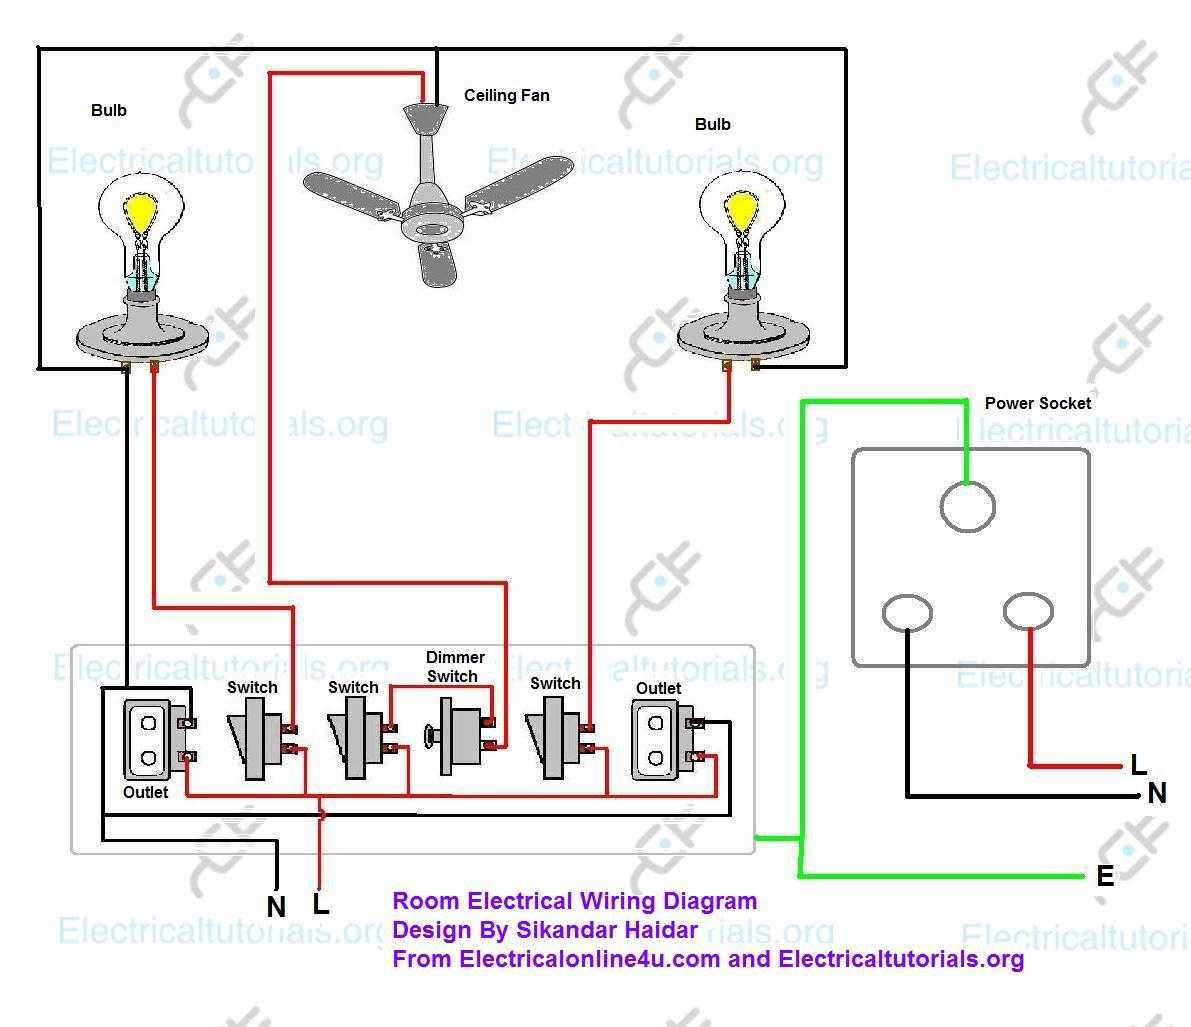 household wiring diagram household wiring diagrams for switches electric circuit drawing at getdrawings.com | free for ...